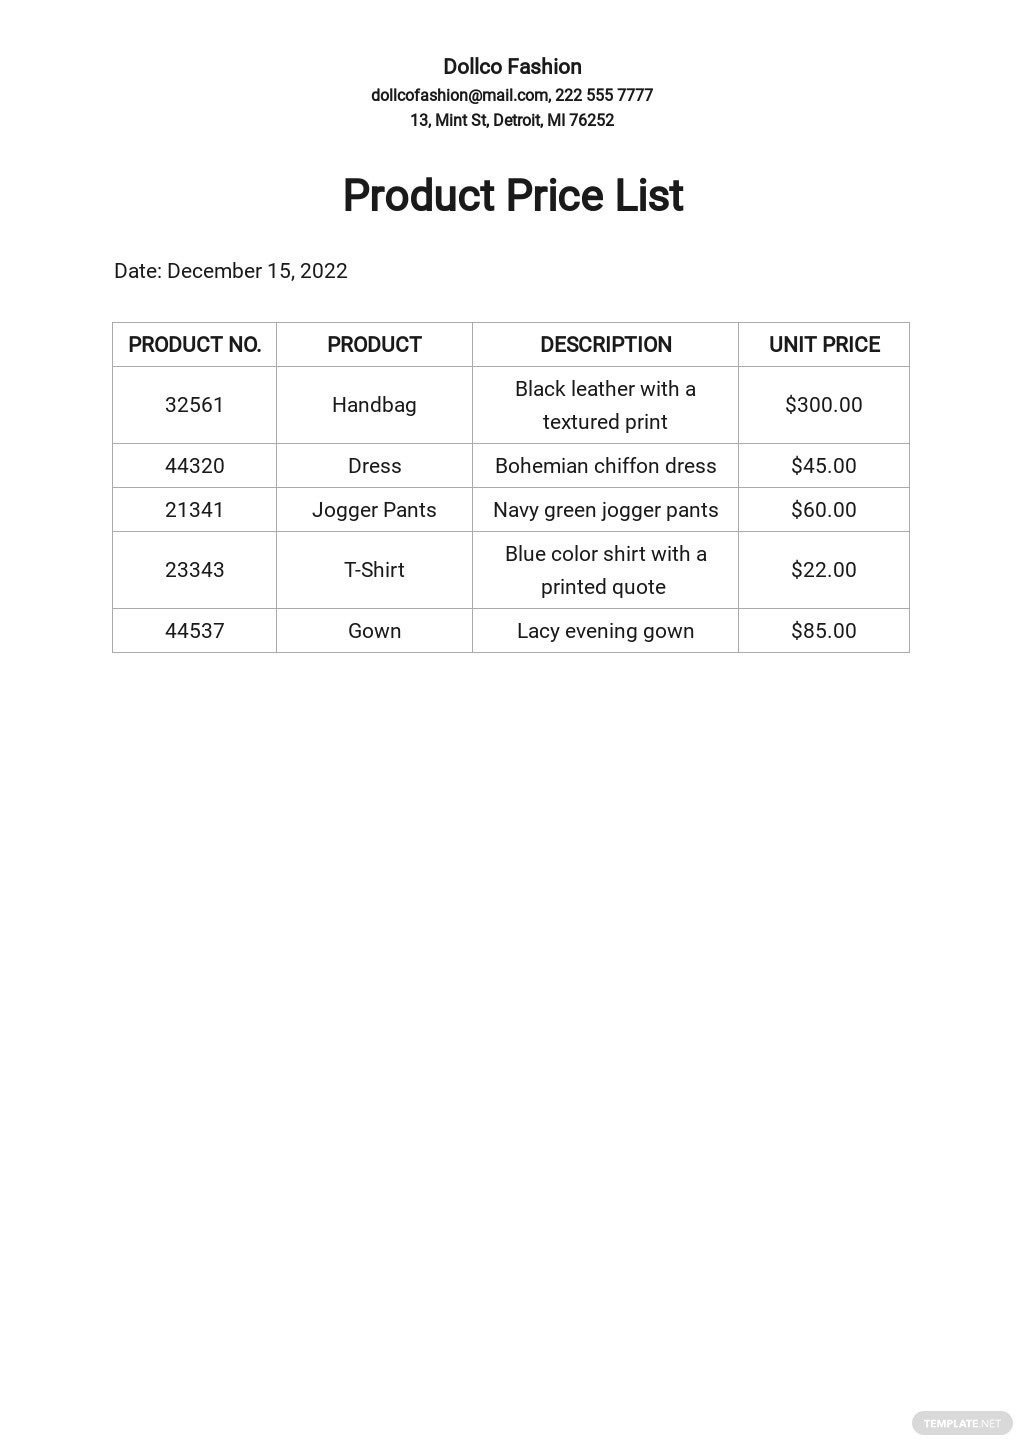 Free Product Price List Template.jpe